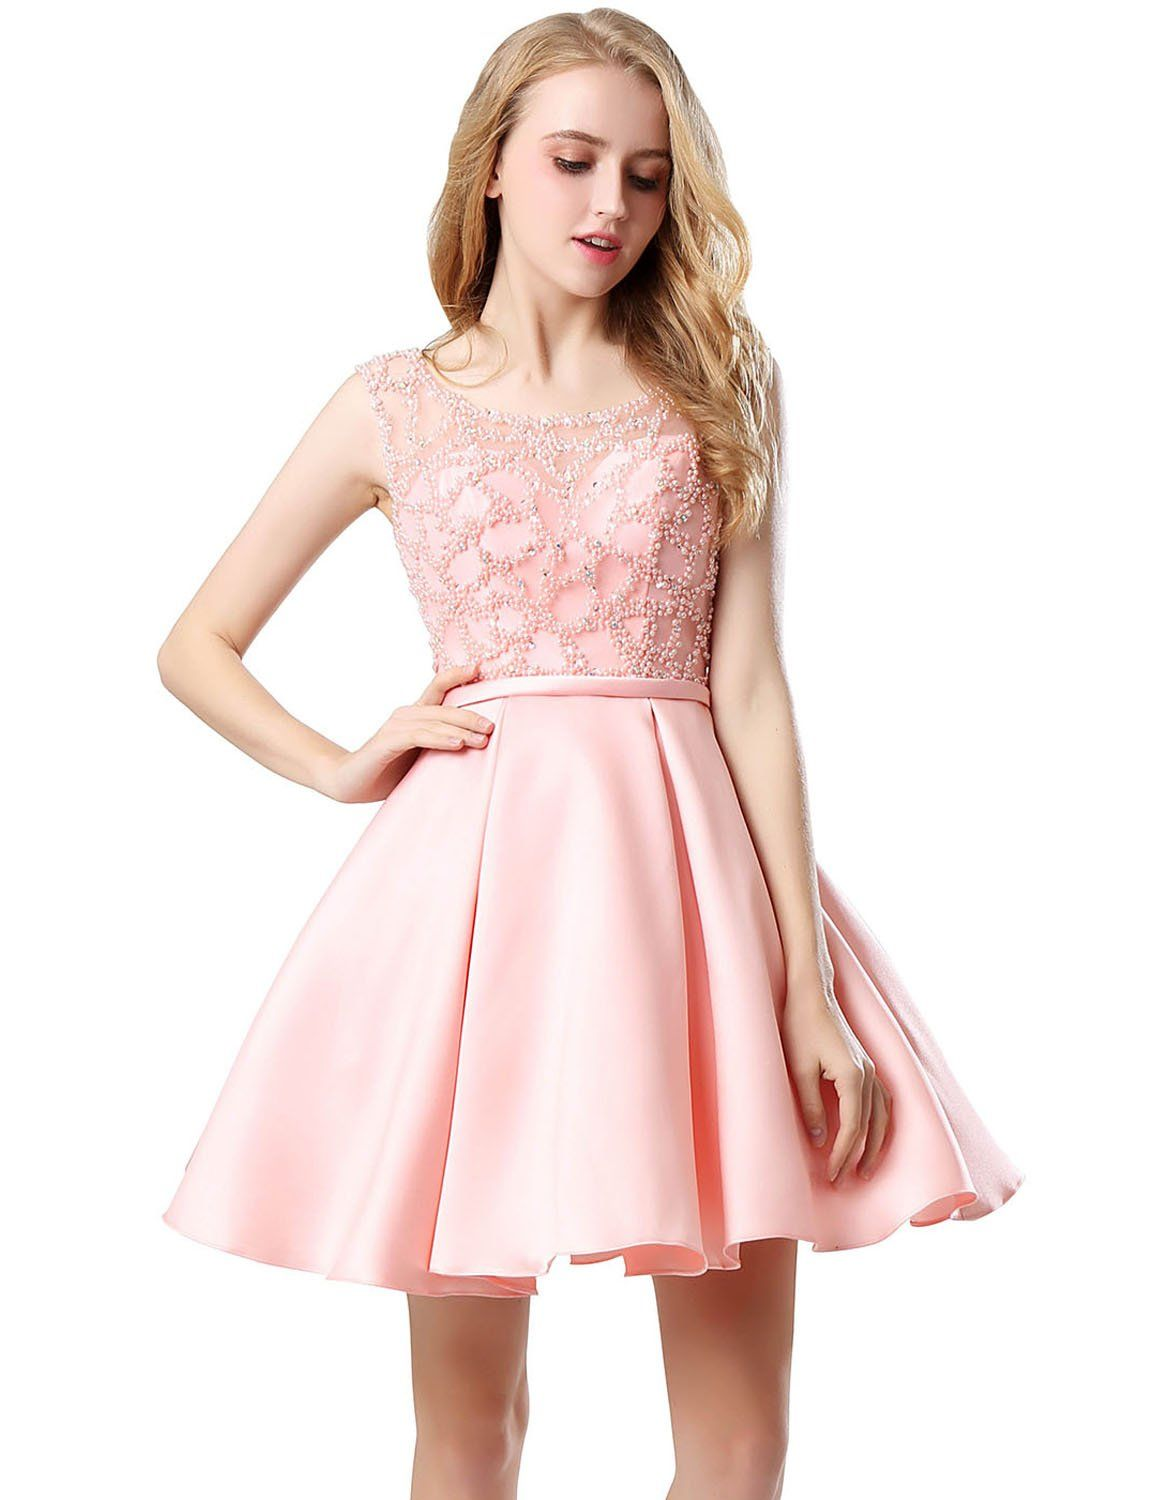 cf06f4ec2d Belle House Satin Homecoming Dresses Short 2018 For Juniors Sheer Neck  Party Graduation Ball Gowns With Beading A Line Cocktail Dress Pink      Details can ...